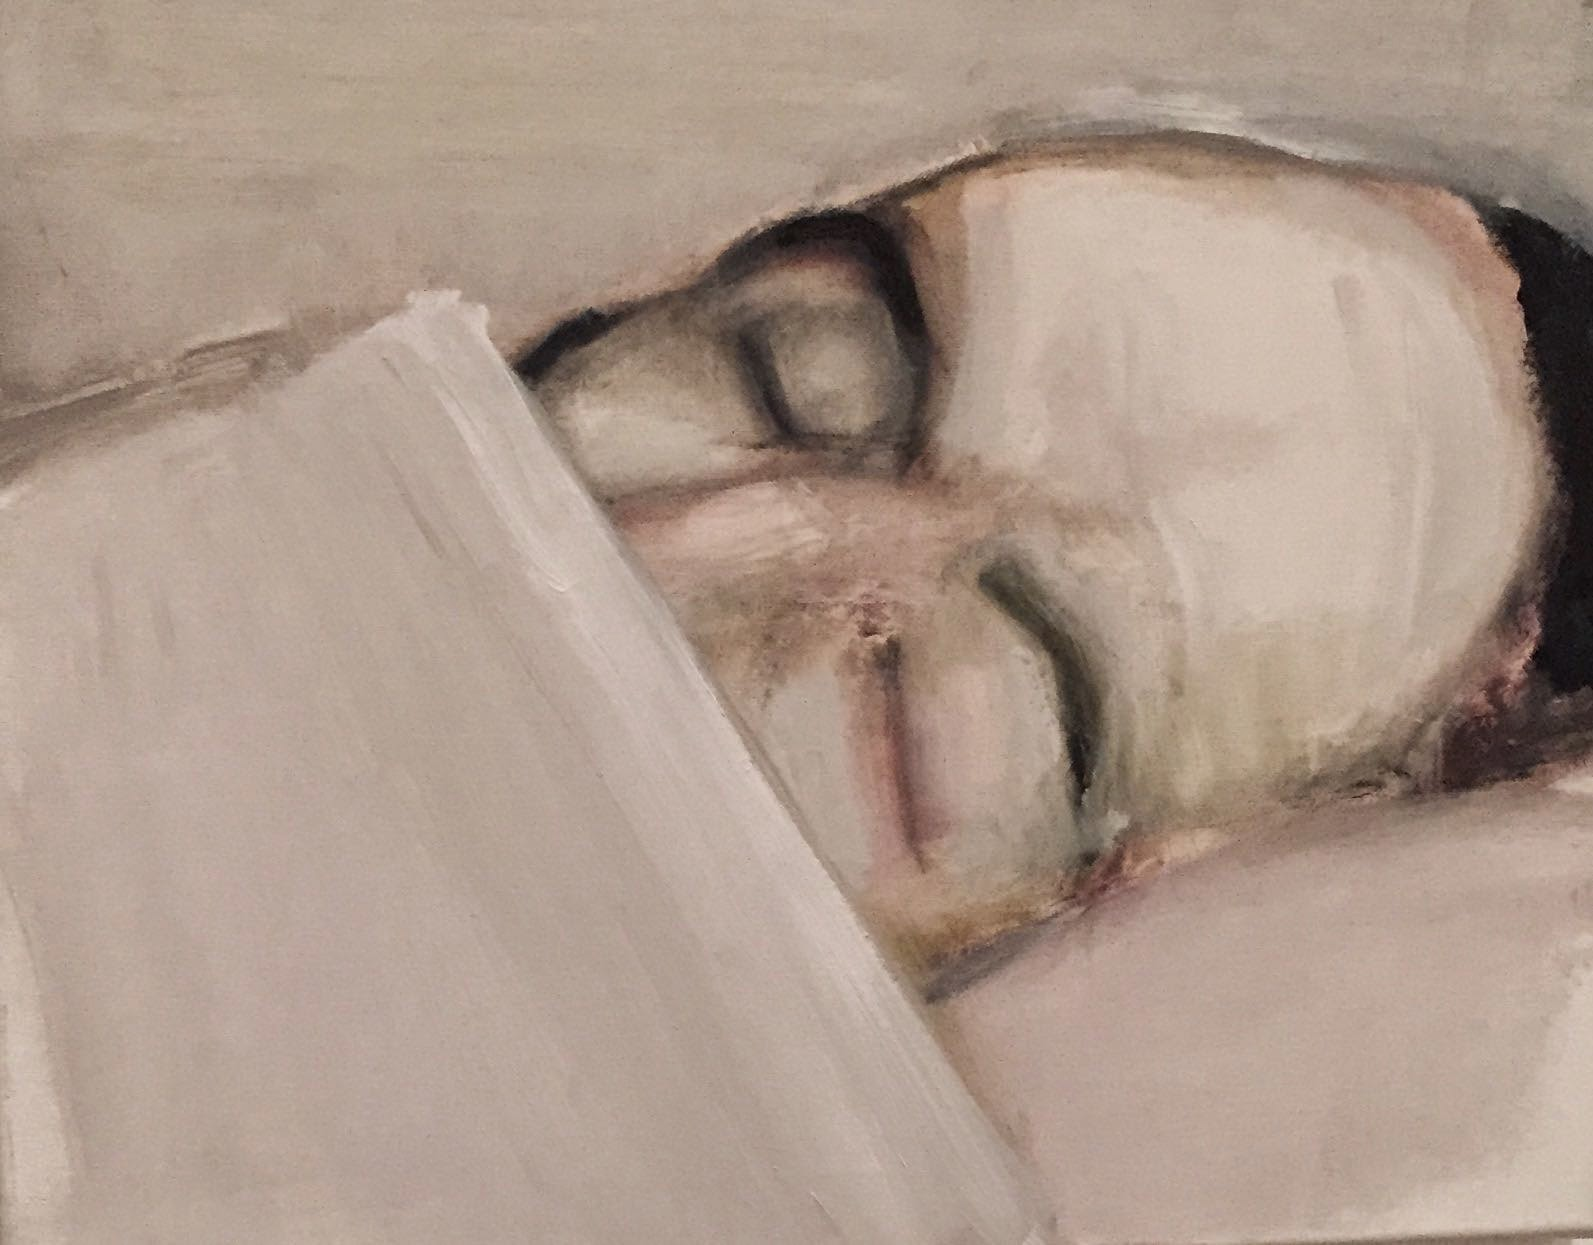 Painting by artist Marlene Dumas of a man dead lying down